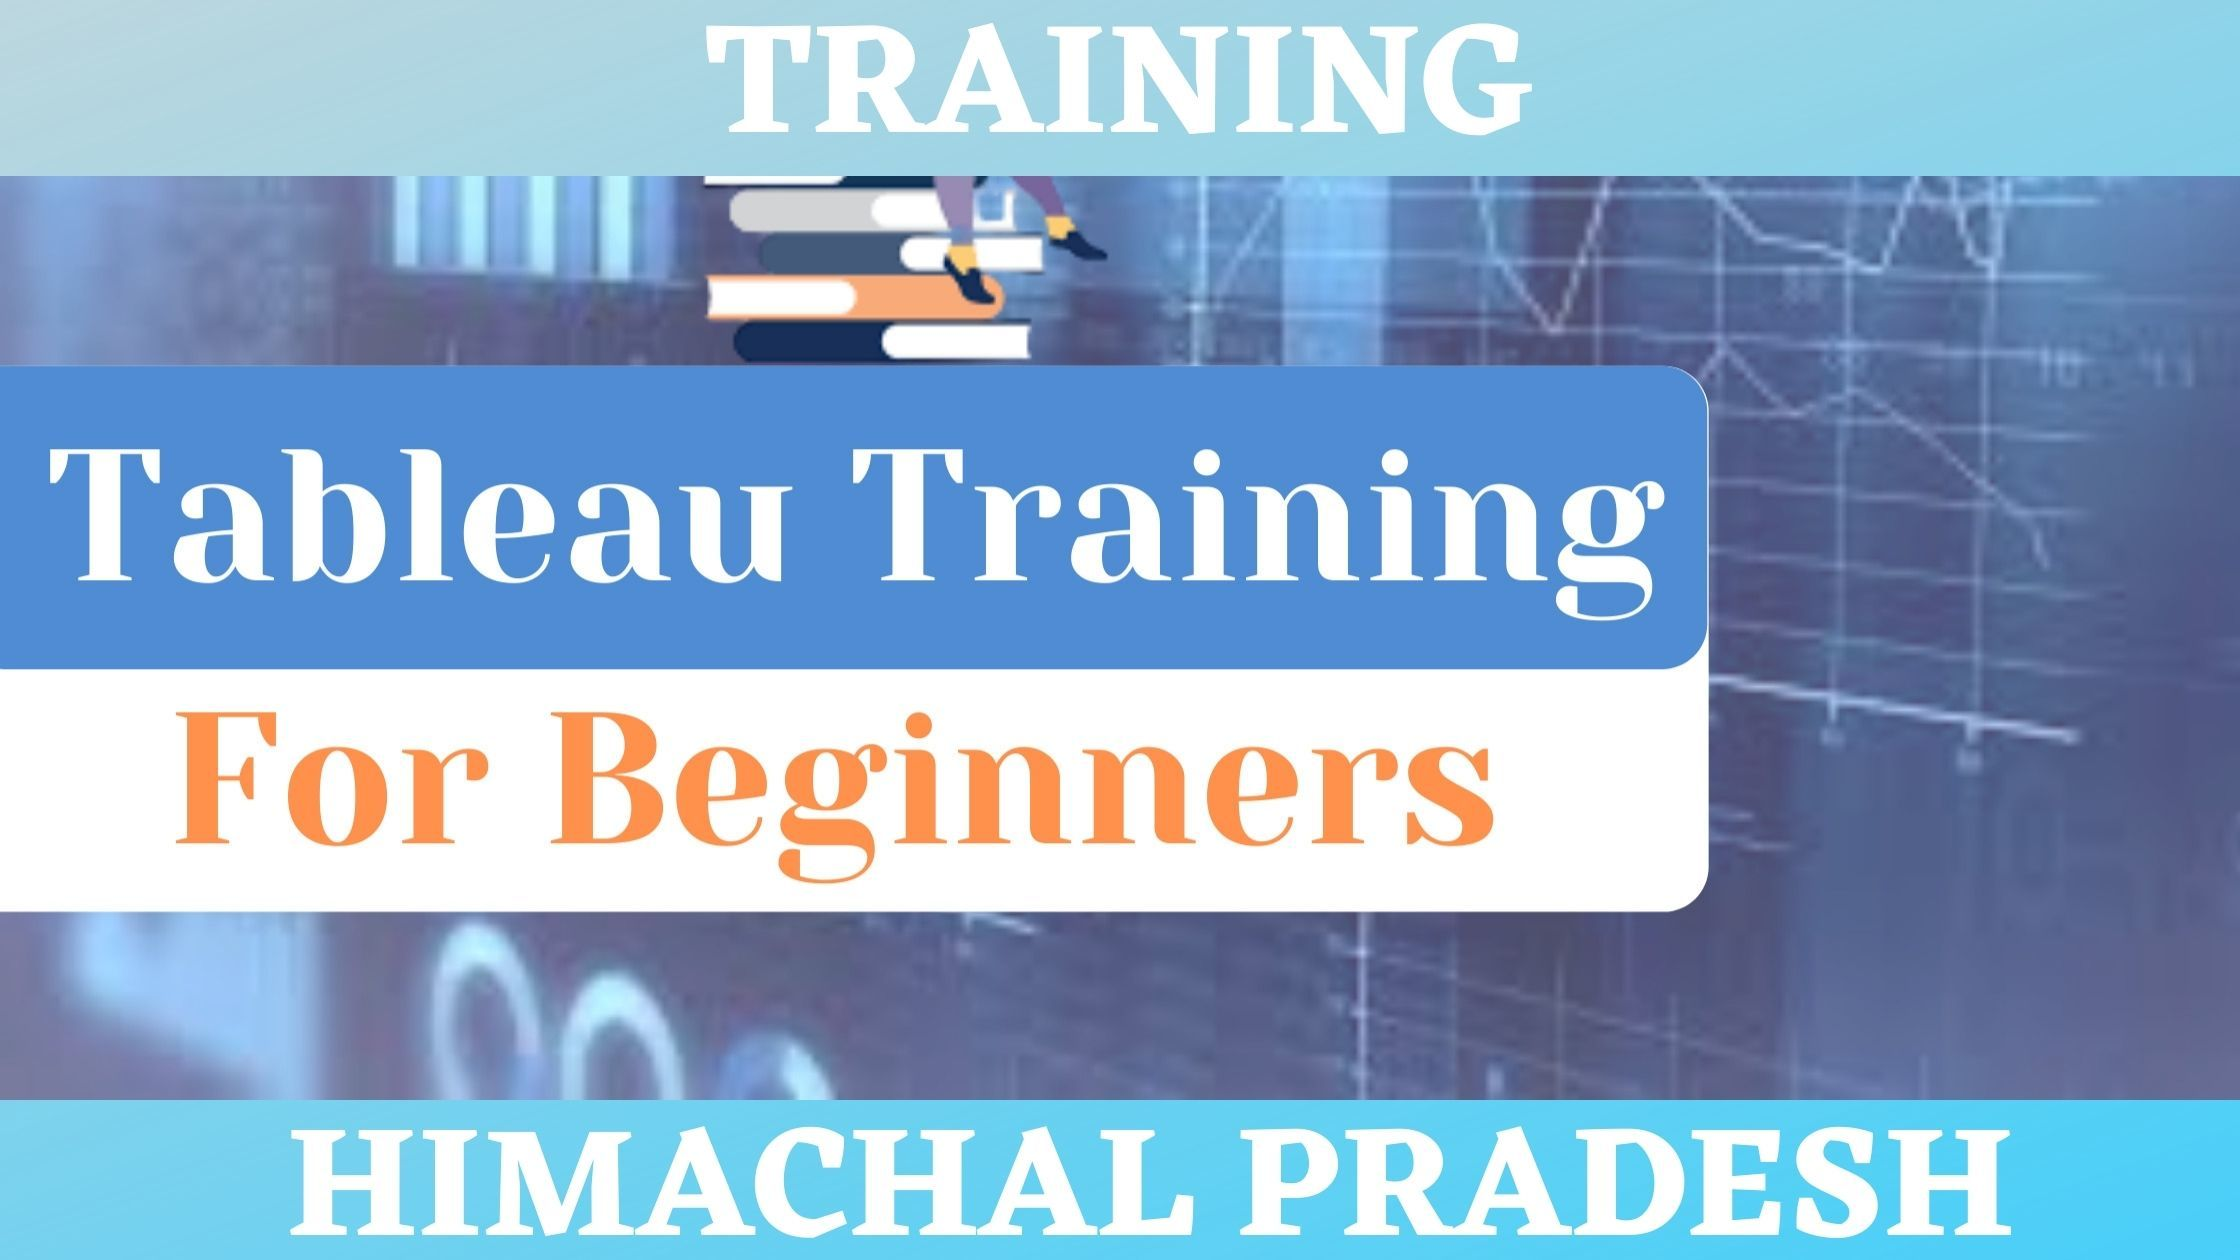 tableau training_in_himachal_pradesh -background.jpeg